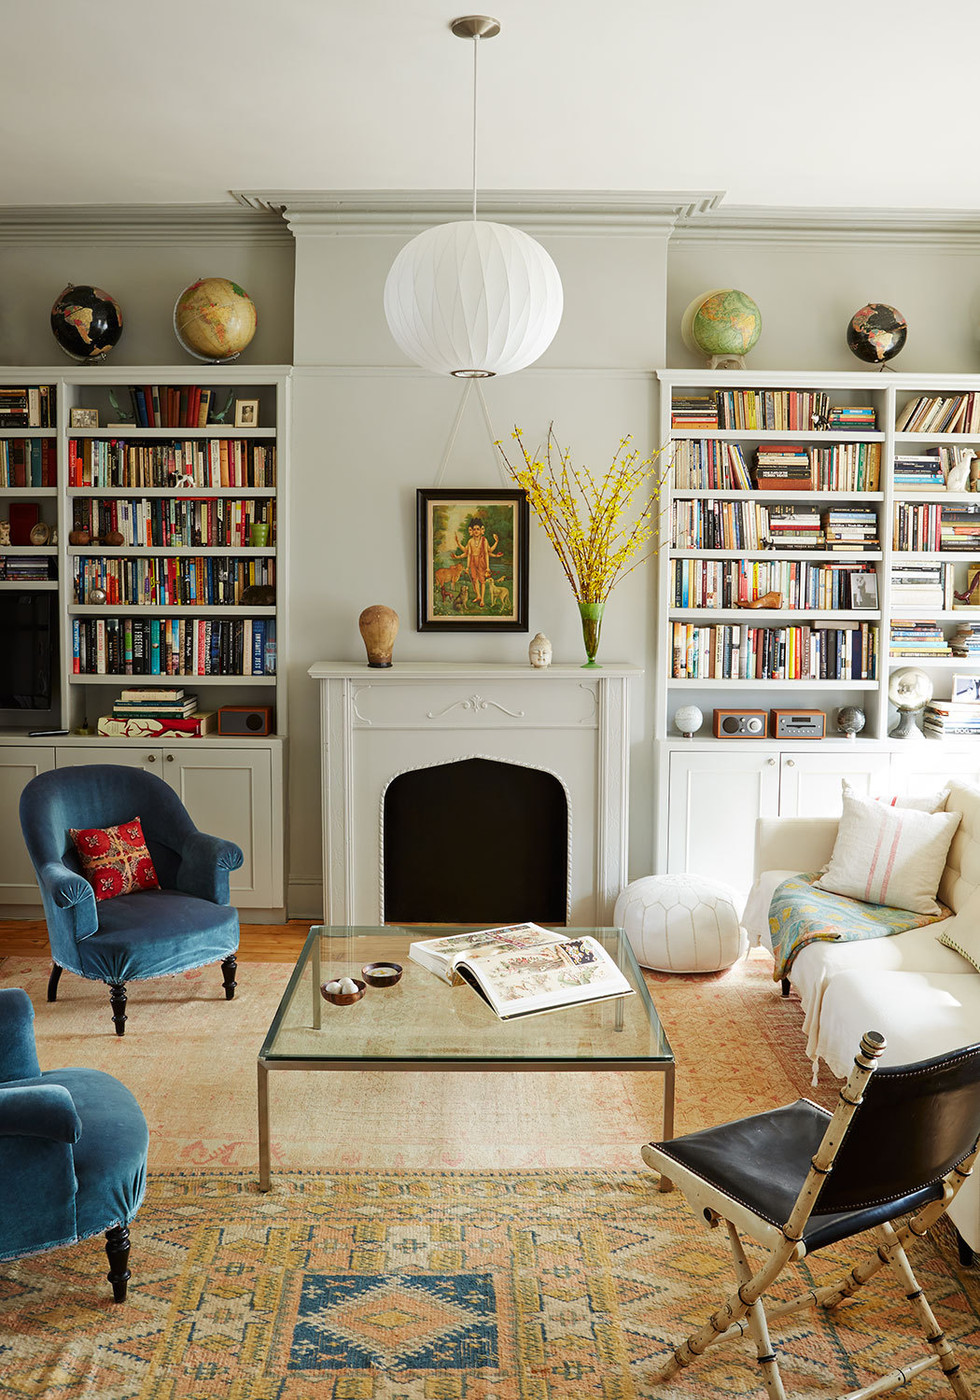 Library Symmetry - Libra - Decorating According to your Star Sign